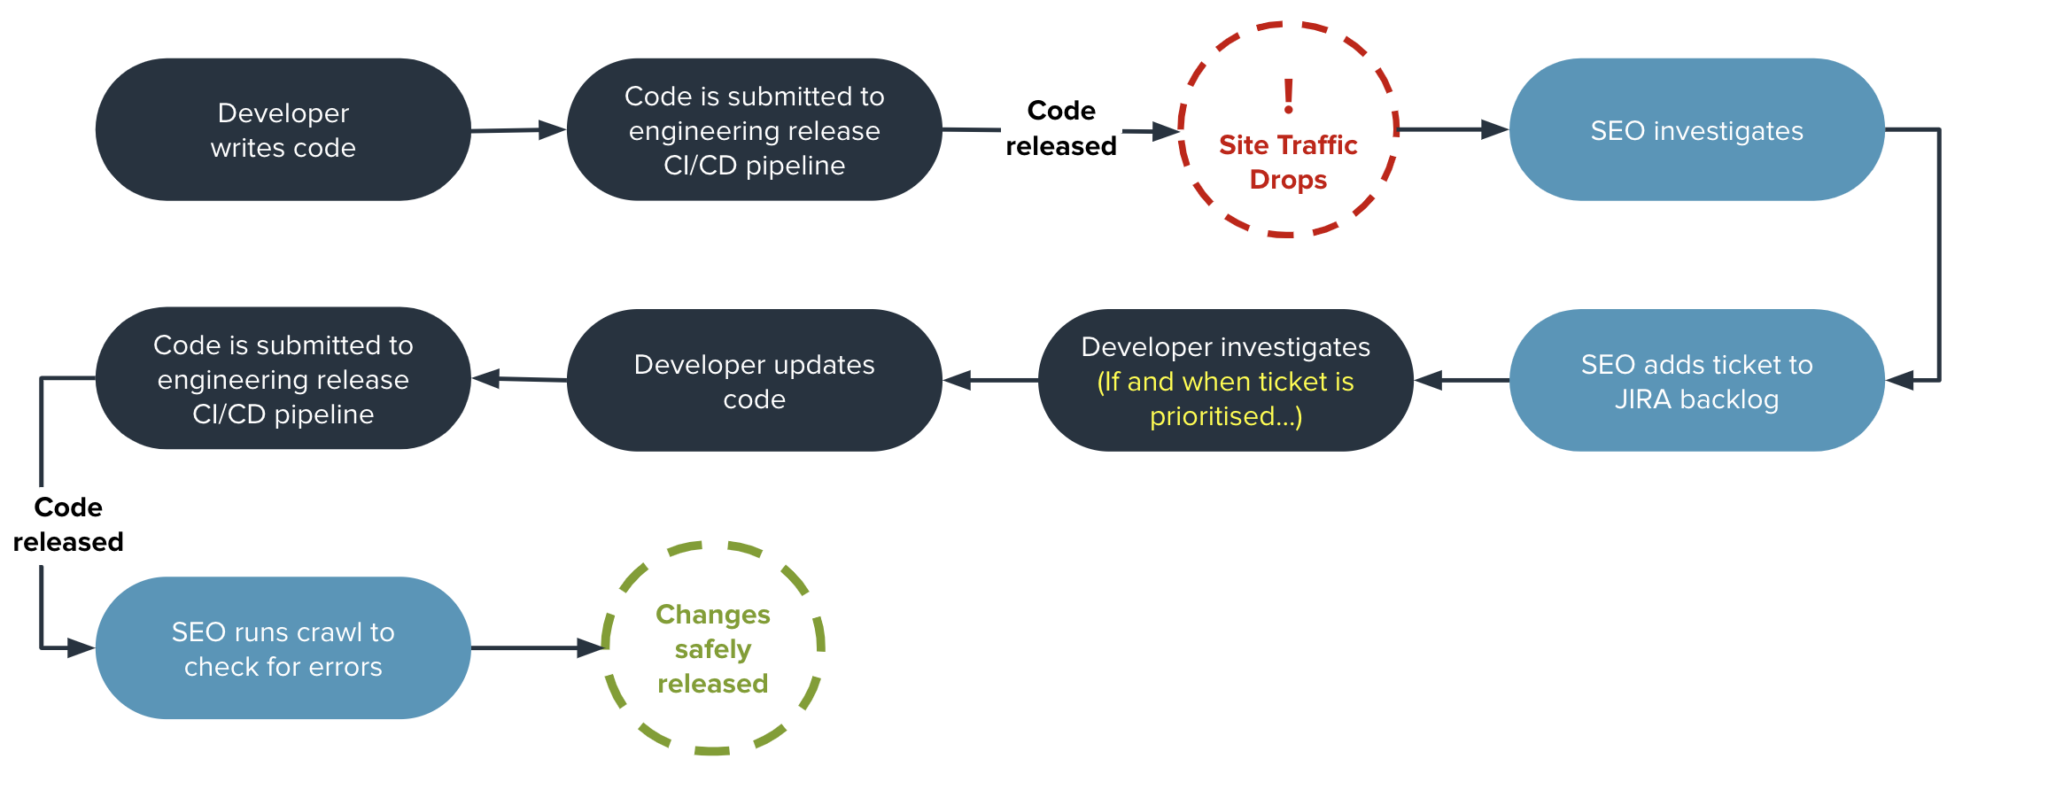 slide showing SEO testing before SEO automation